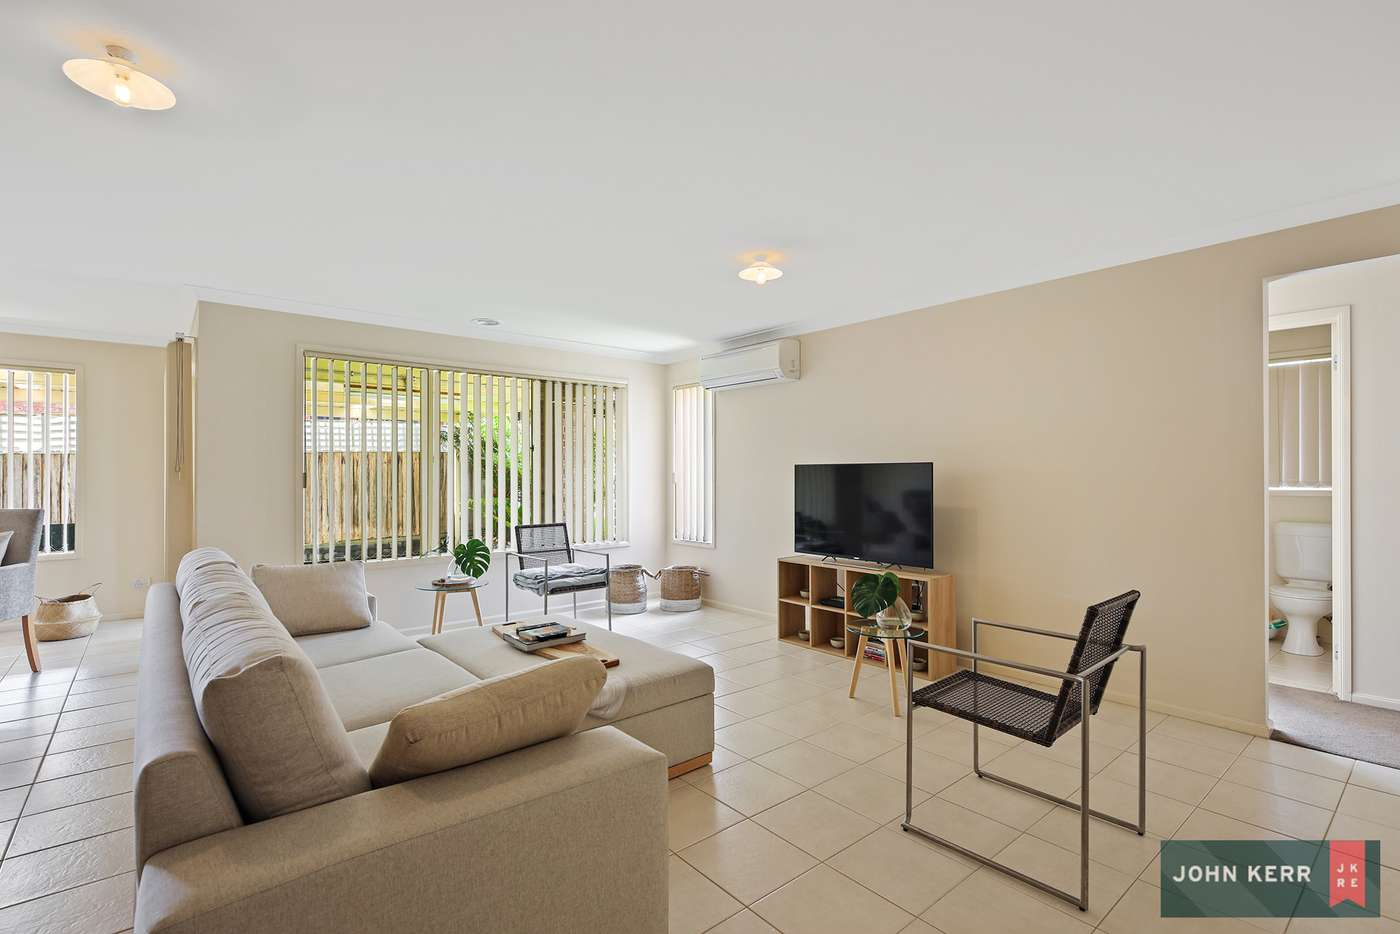 Sixth view of Homely house listing, 4 Howitt Court, Newborough VIC 3825